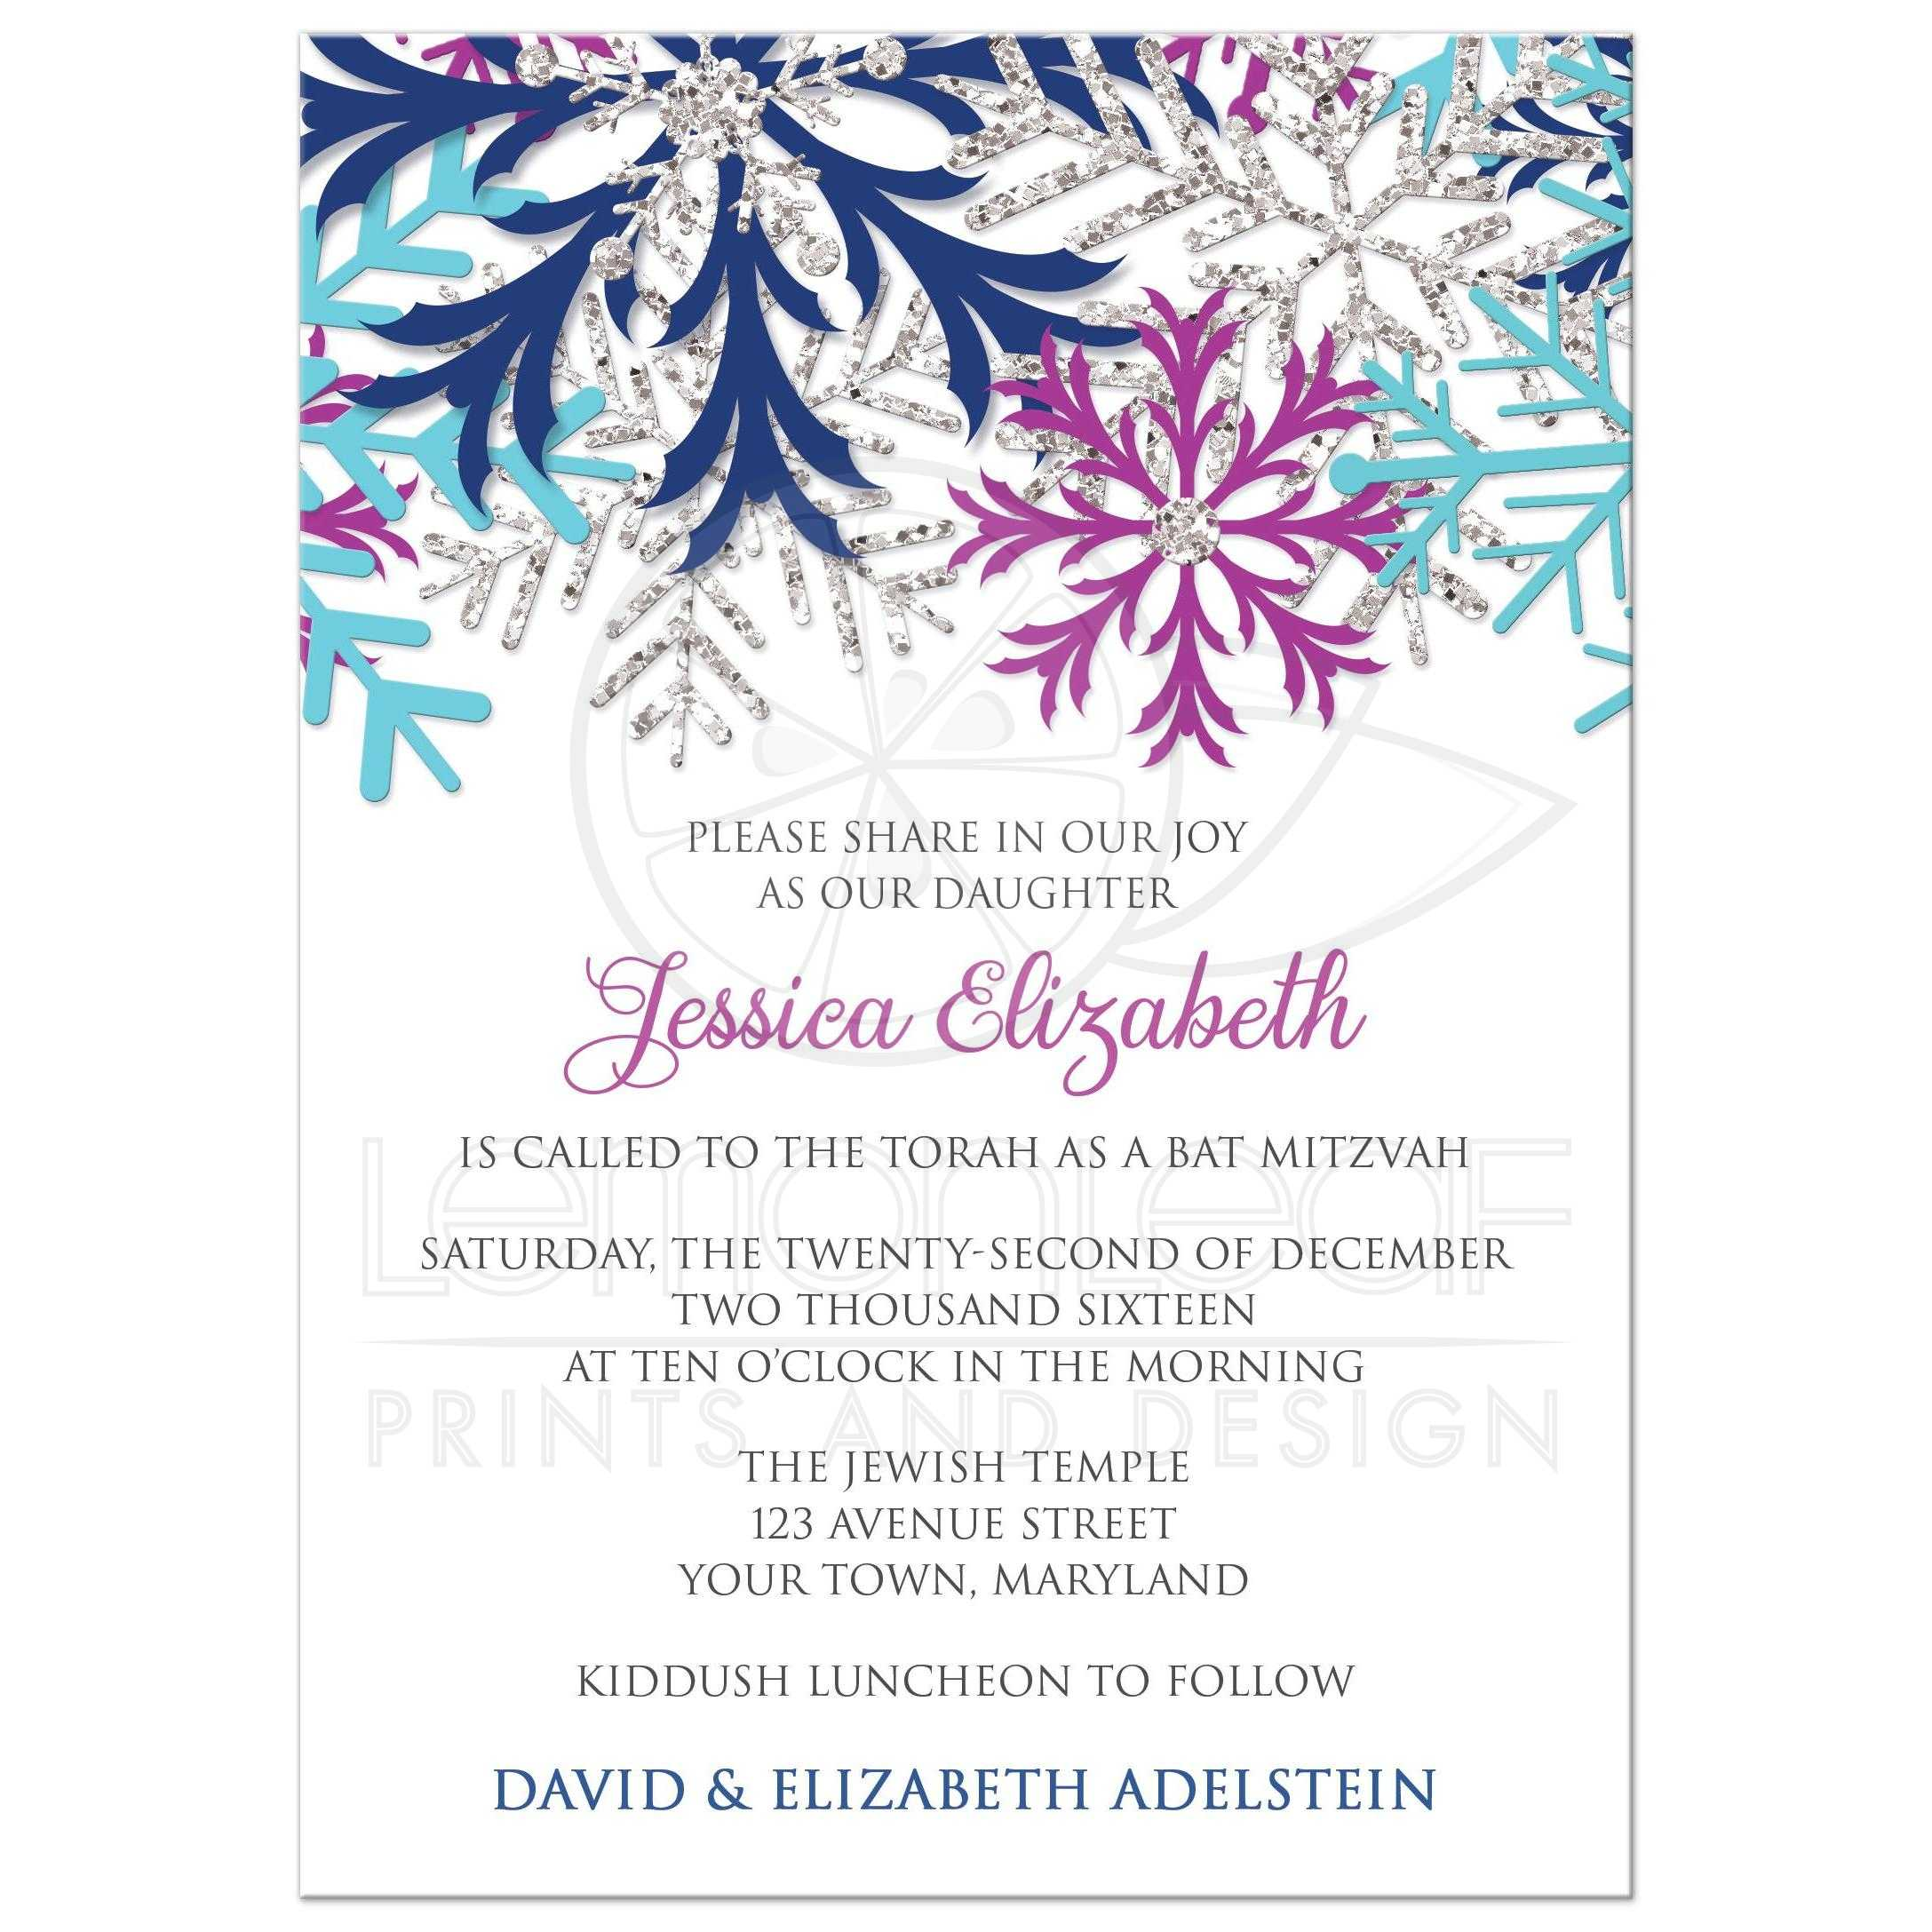 Bat Mitzvah Invitations Turquoise Navy Orchid Silver Snowflake